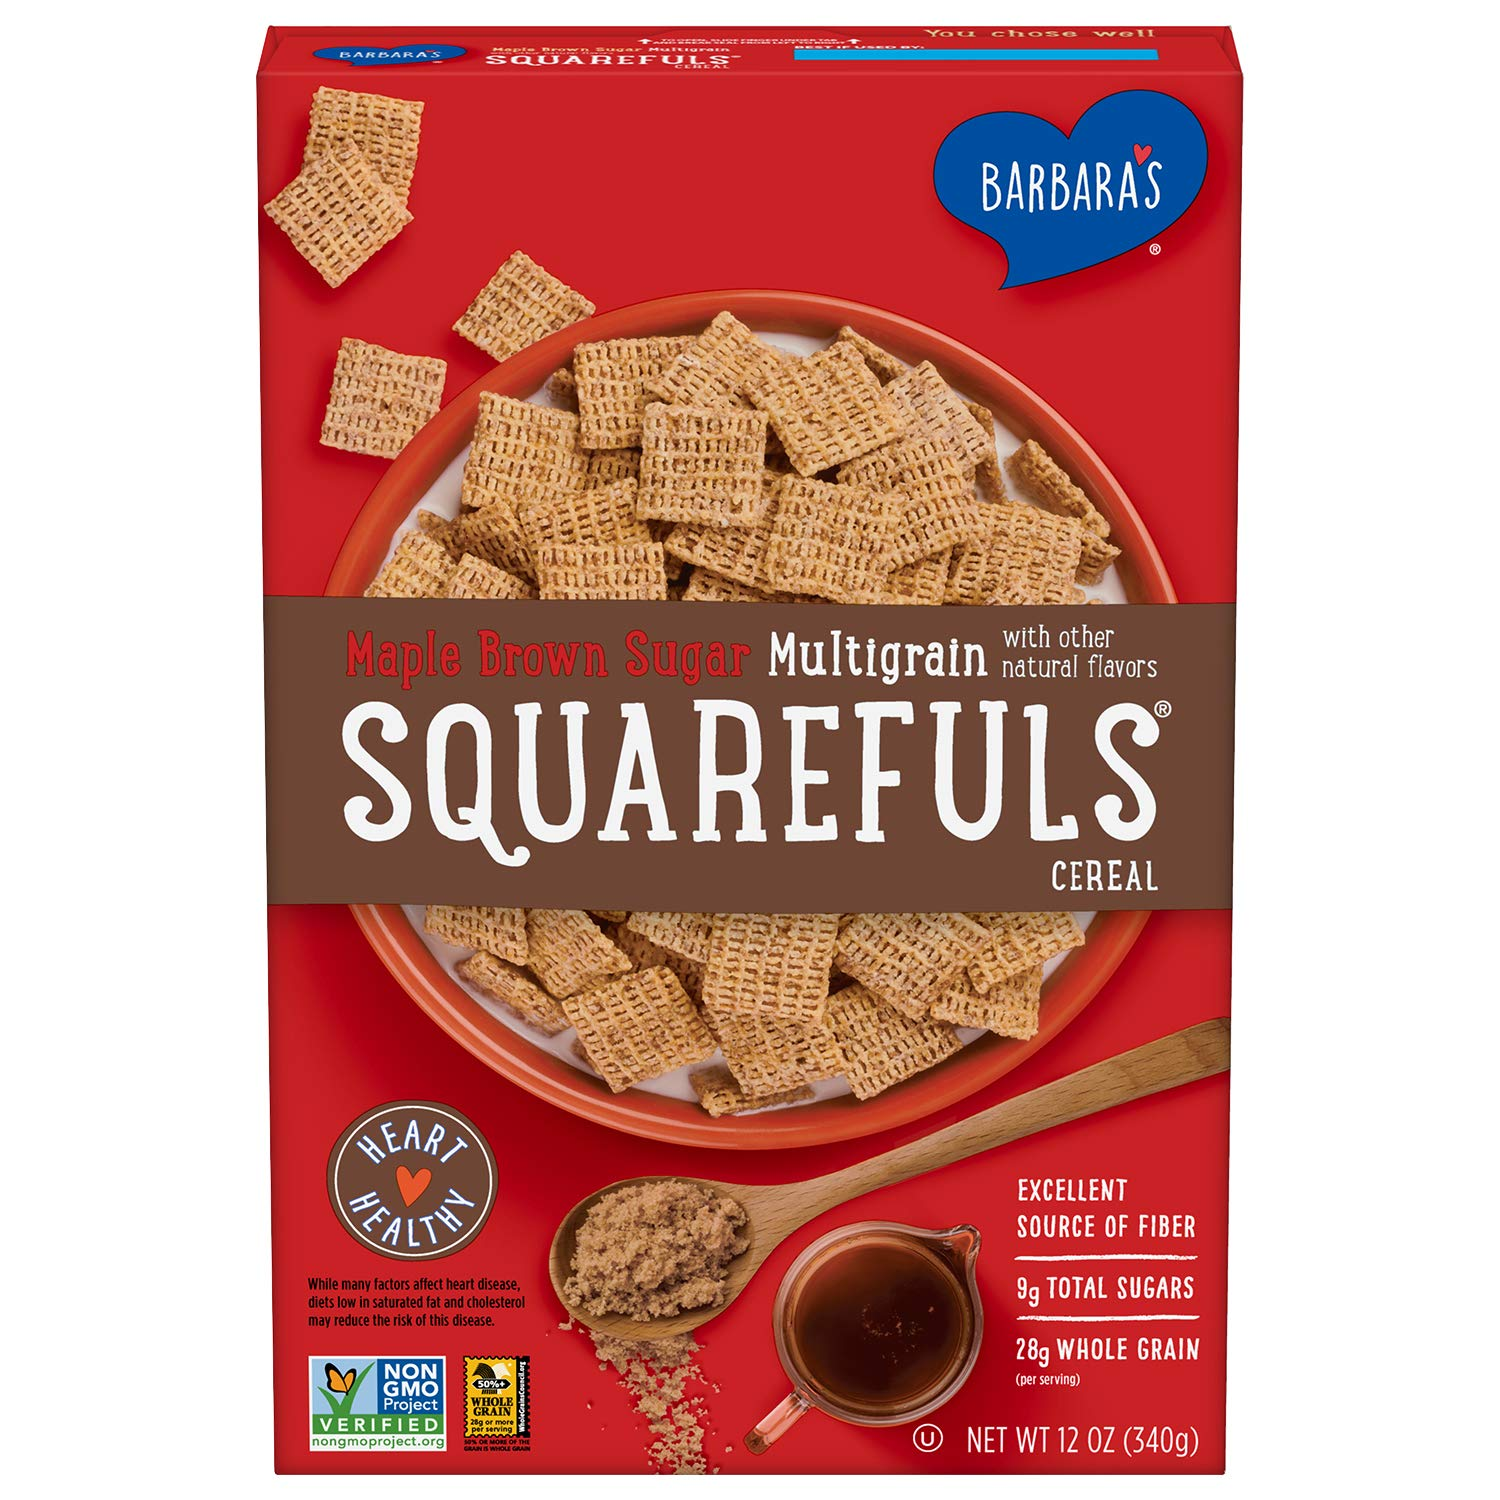 Barbara's Multigrain Squarefuls Maple Brown Sugar Cereal, Heart Healthy, Non-GMO, 12 Oz Box